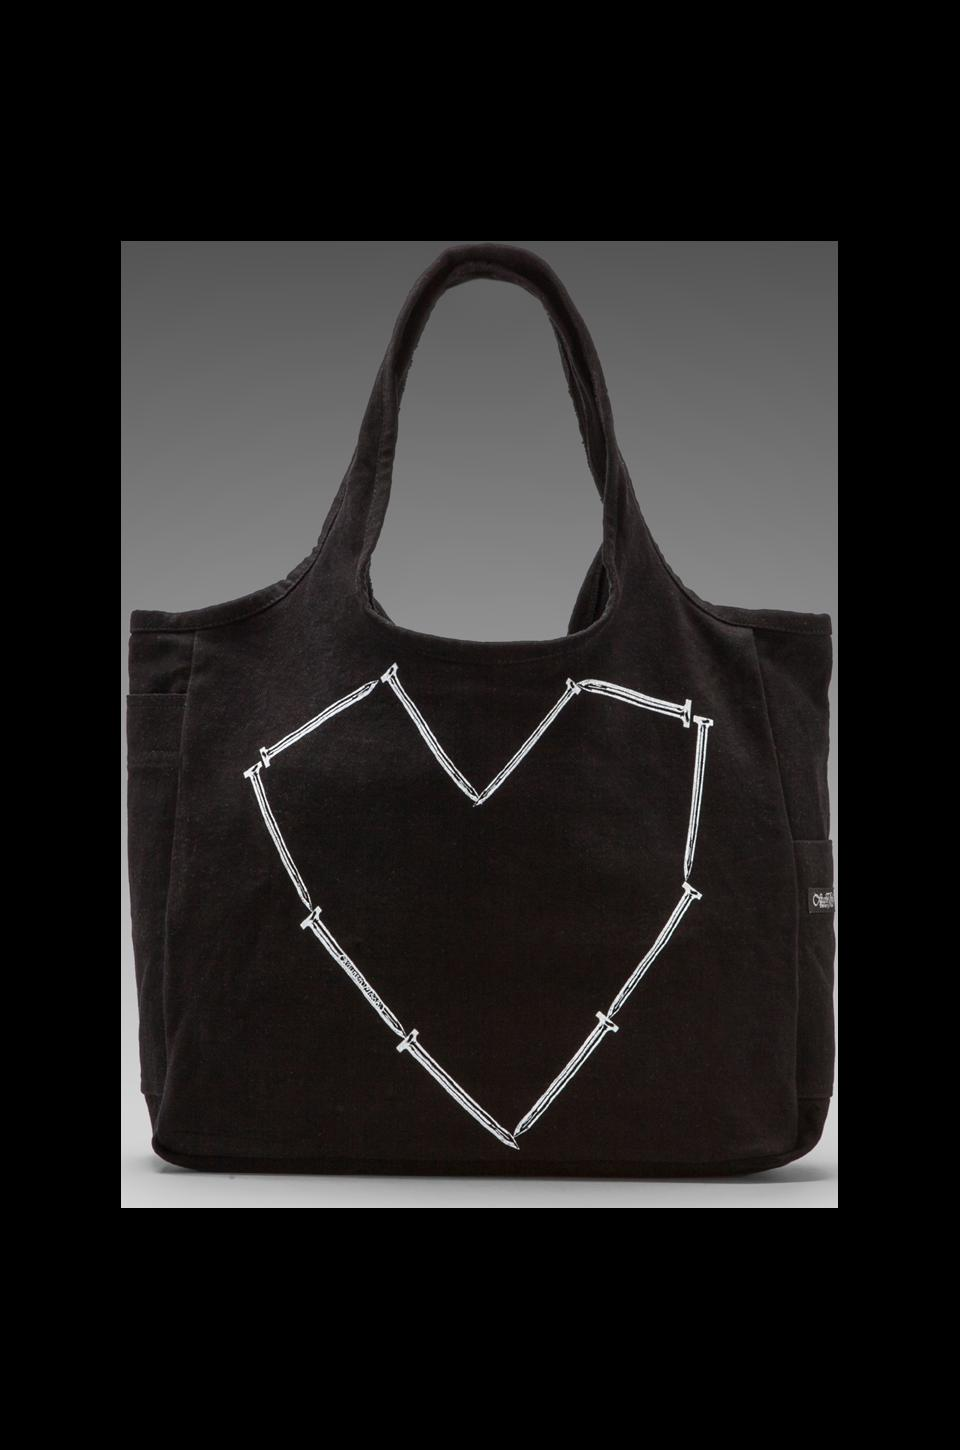 Lauren Moshi Taylor Nail Heart Canvas Tote Bag in Black